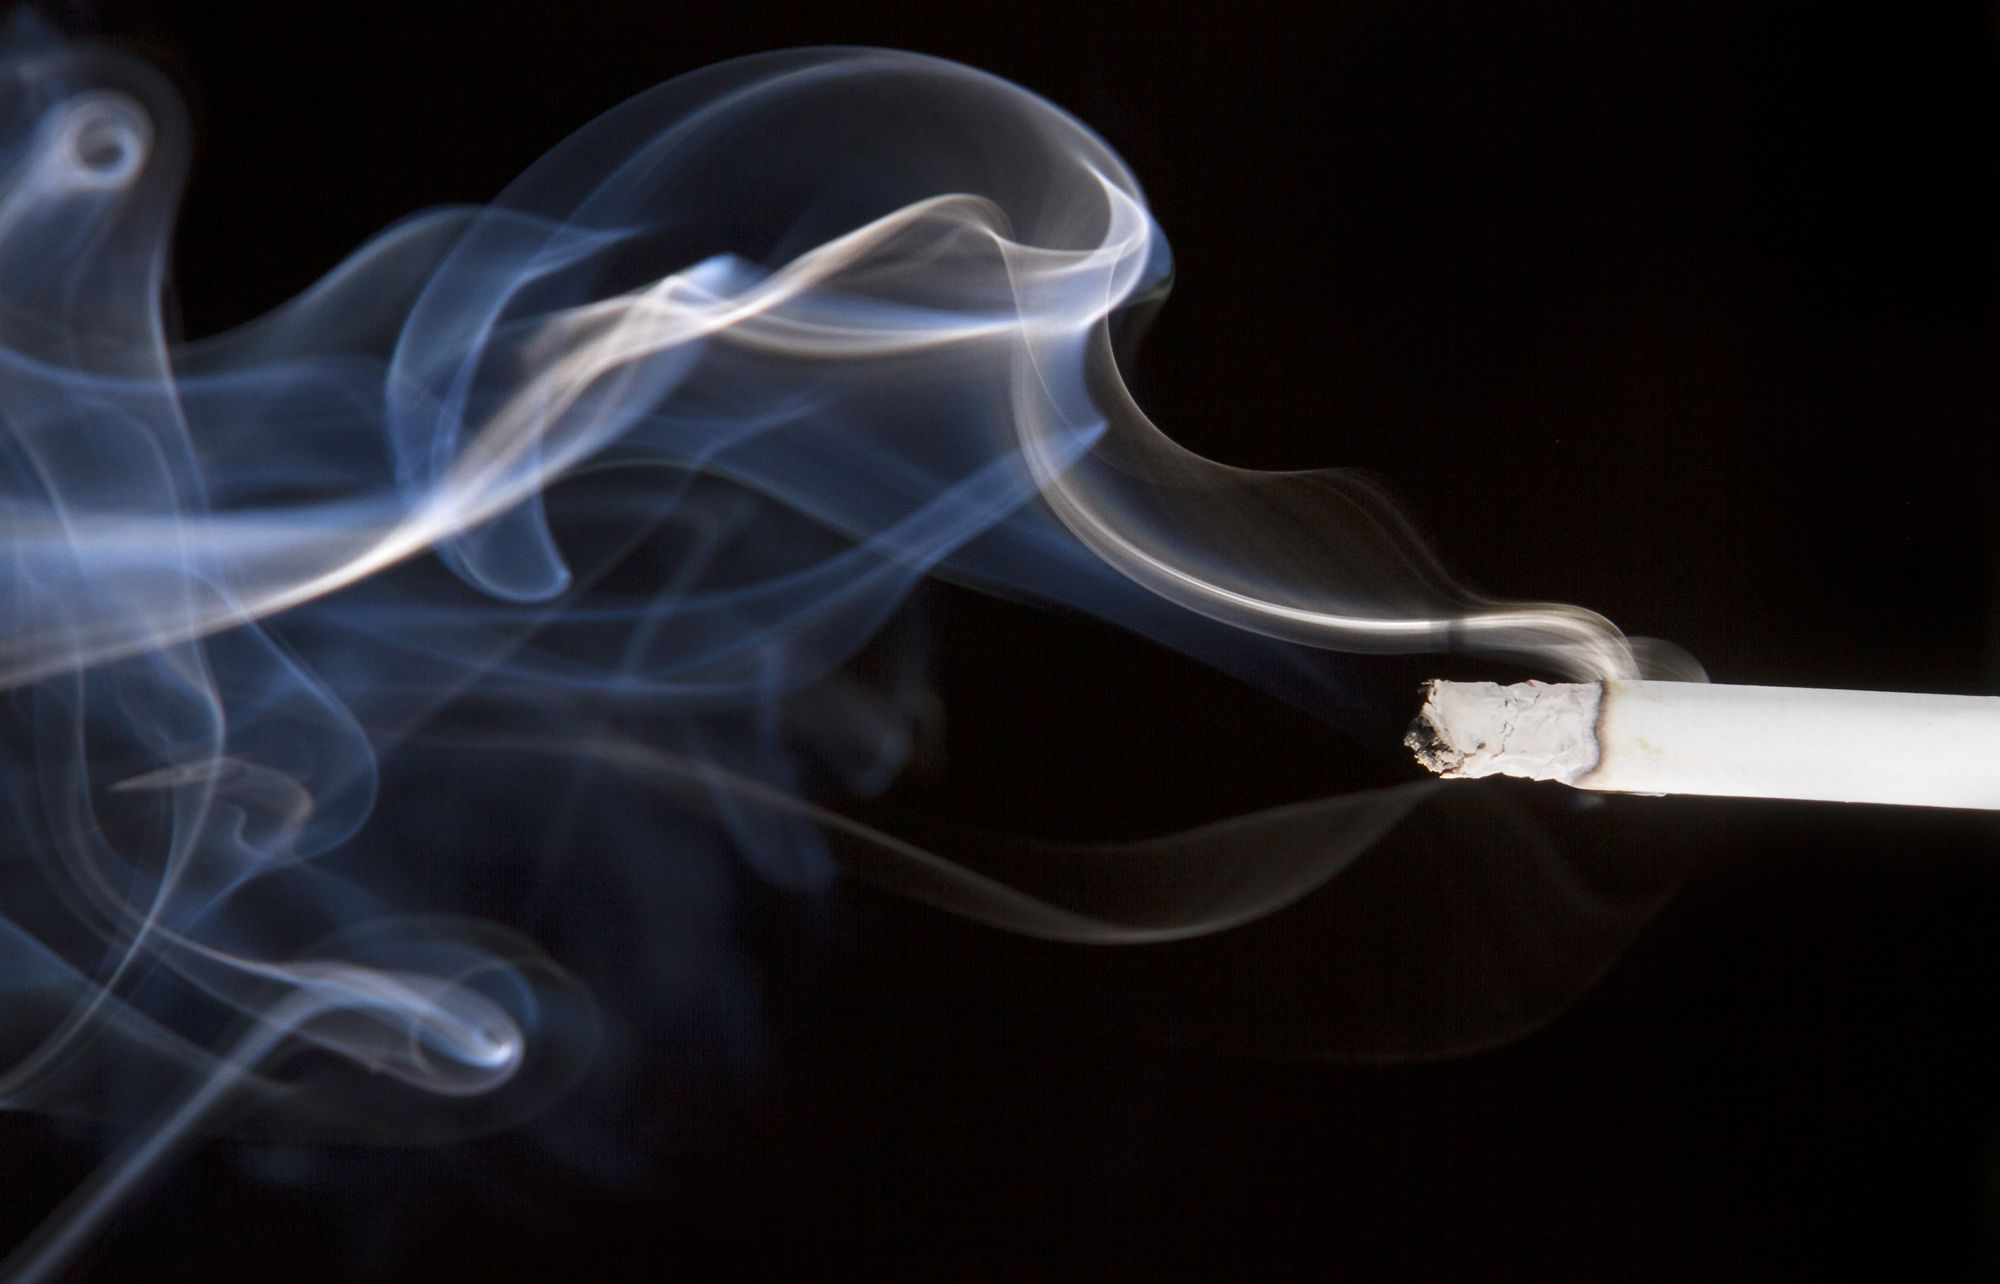 Why Benzene In Cigarette Smoke Can Damage Your Health